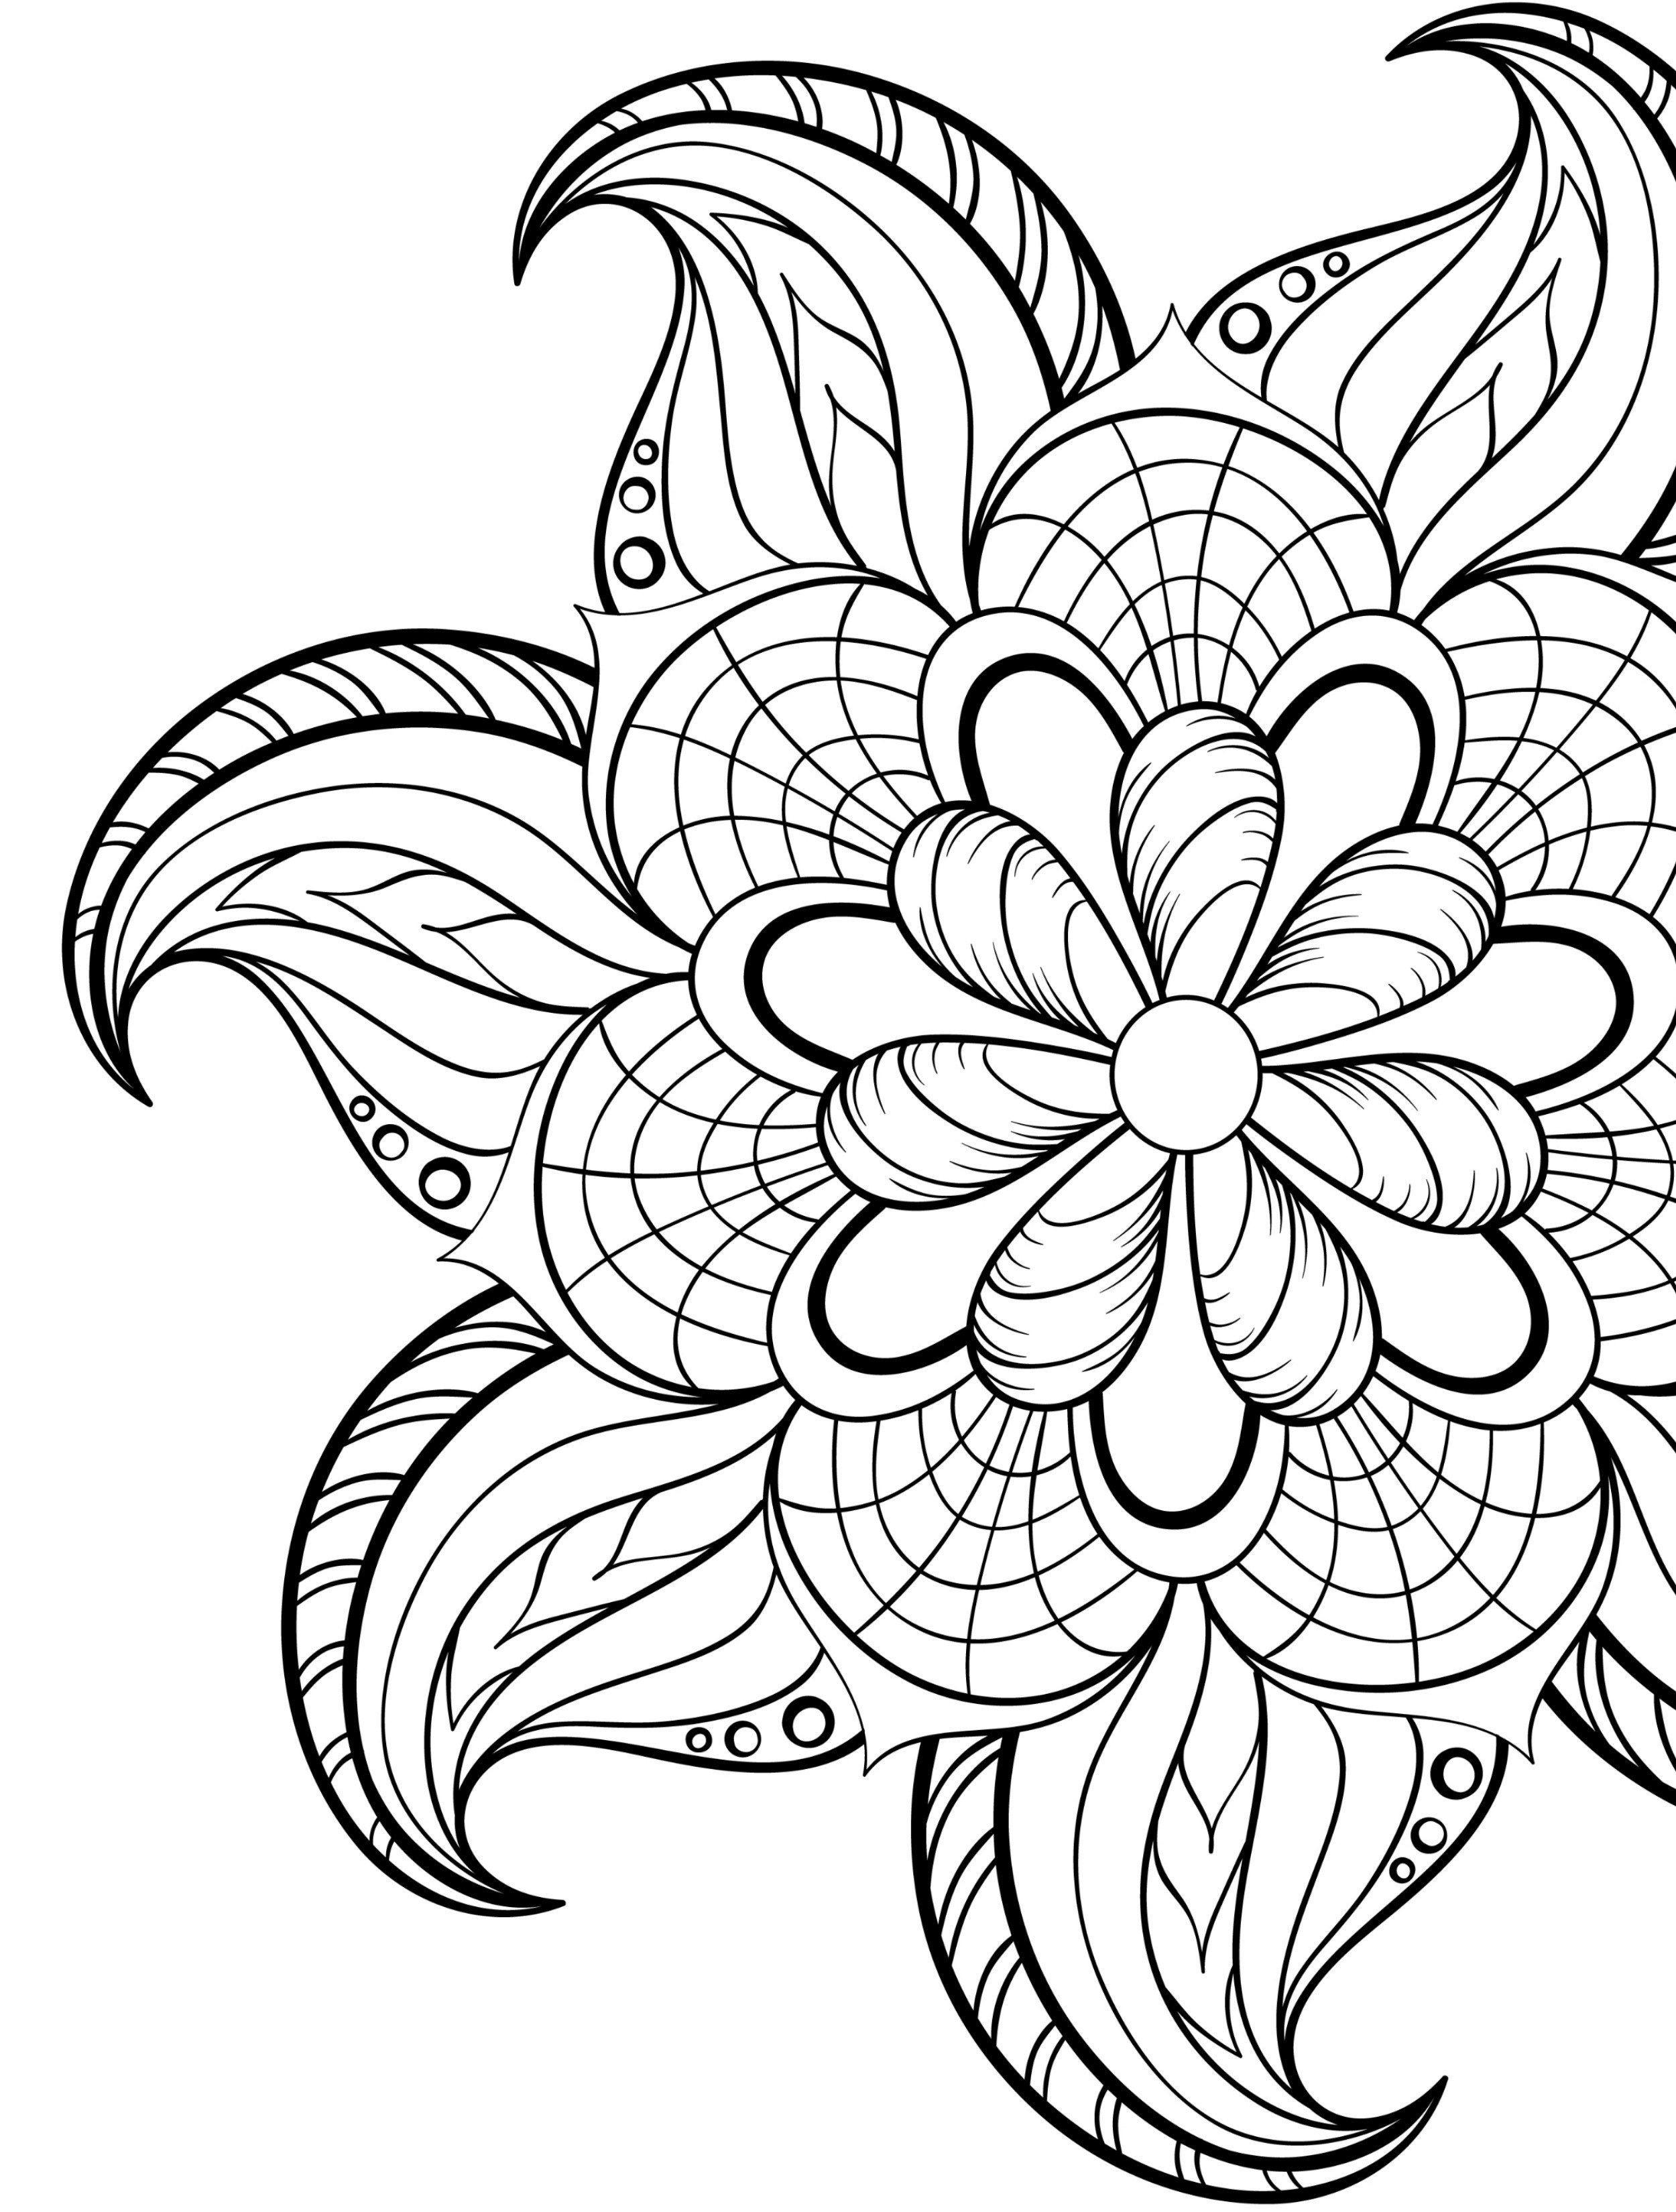 20 Gorgeous Free Printable Adult Coloring Pages Mandala Coloring Pages Printable Adult Coloring Pages Coloring Pages To Print